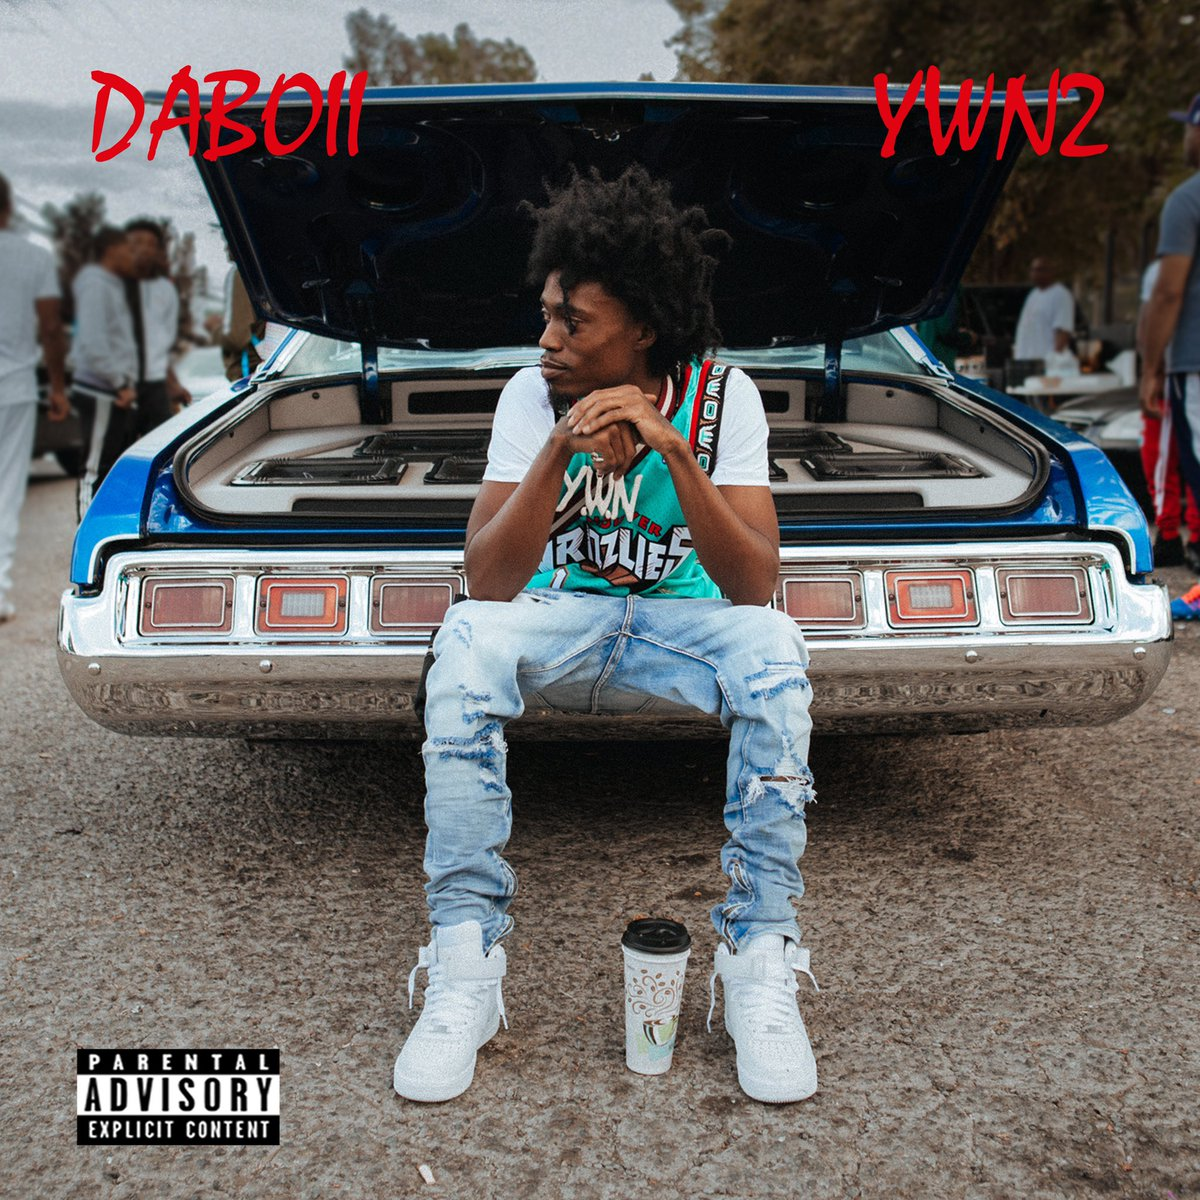 . @DaBoii___ new album #YWN2 is on the way. 🦁  @sobxrbe